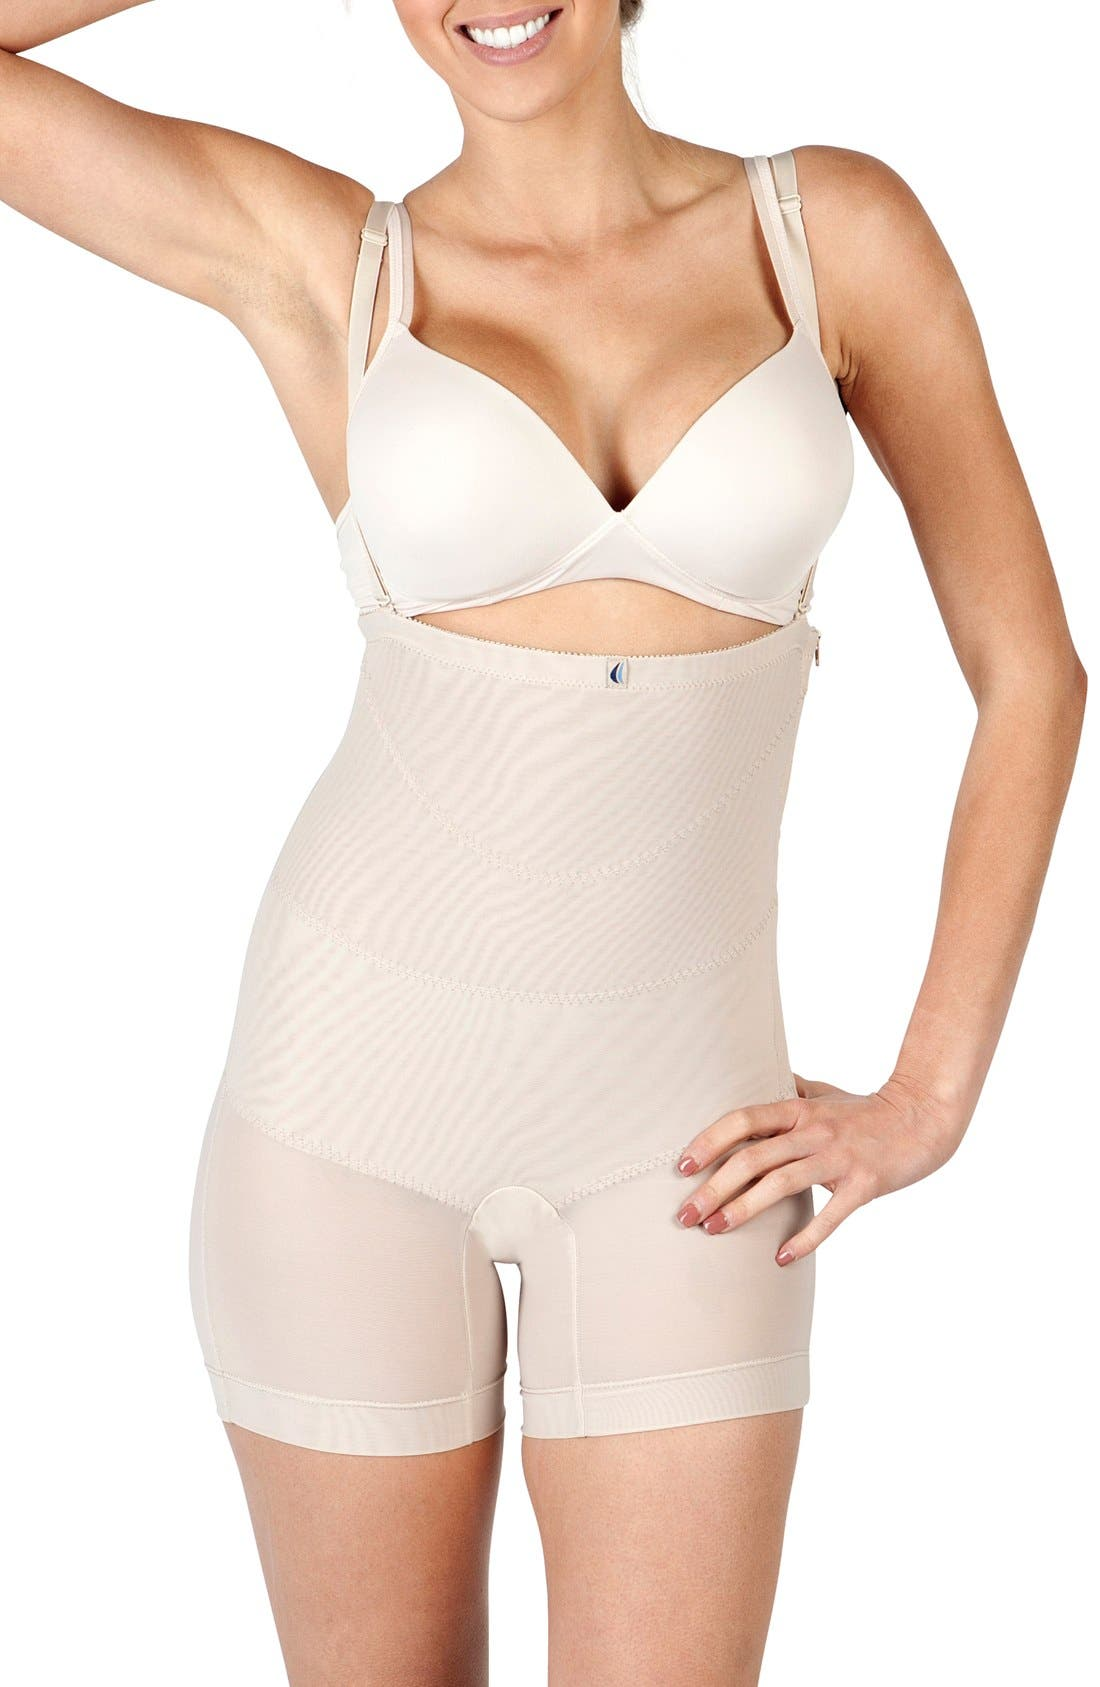 'Sienna' Post C-Section Garment,                             Main thumbnail 1, color,                             NUDE